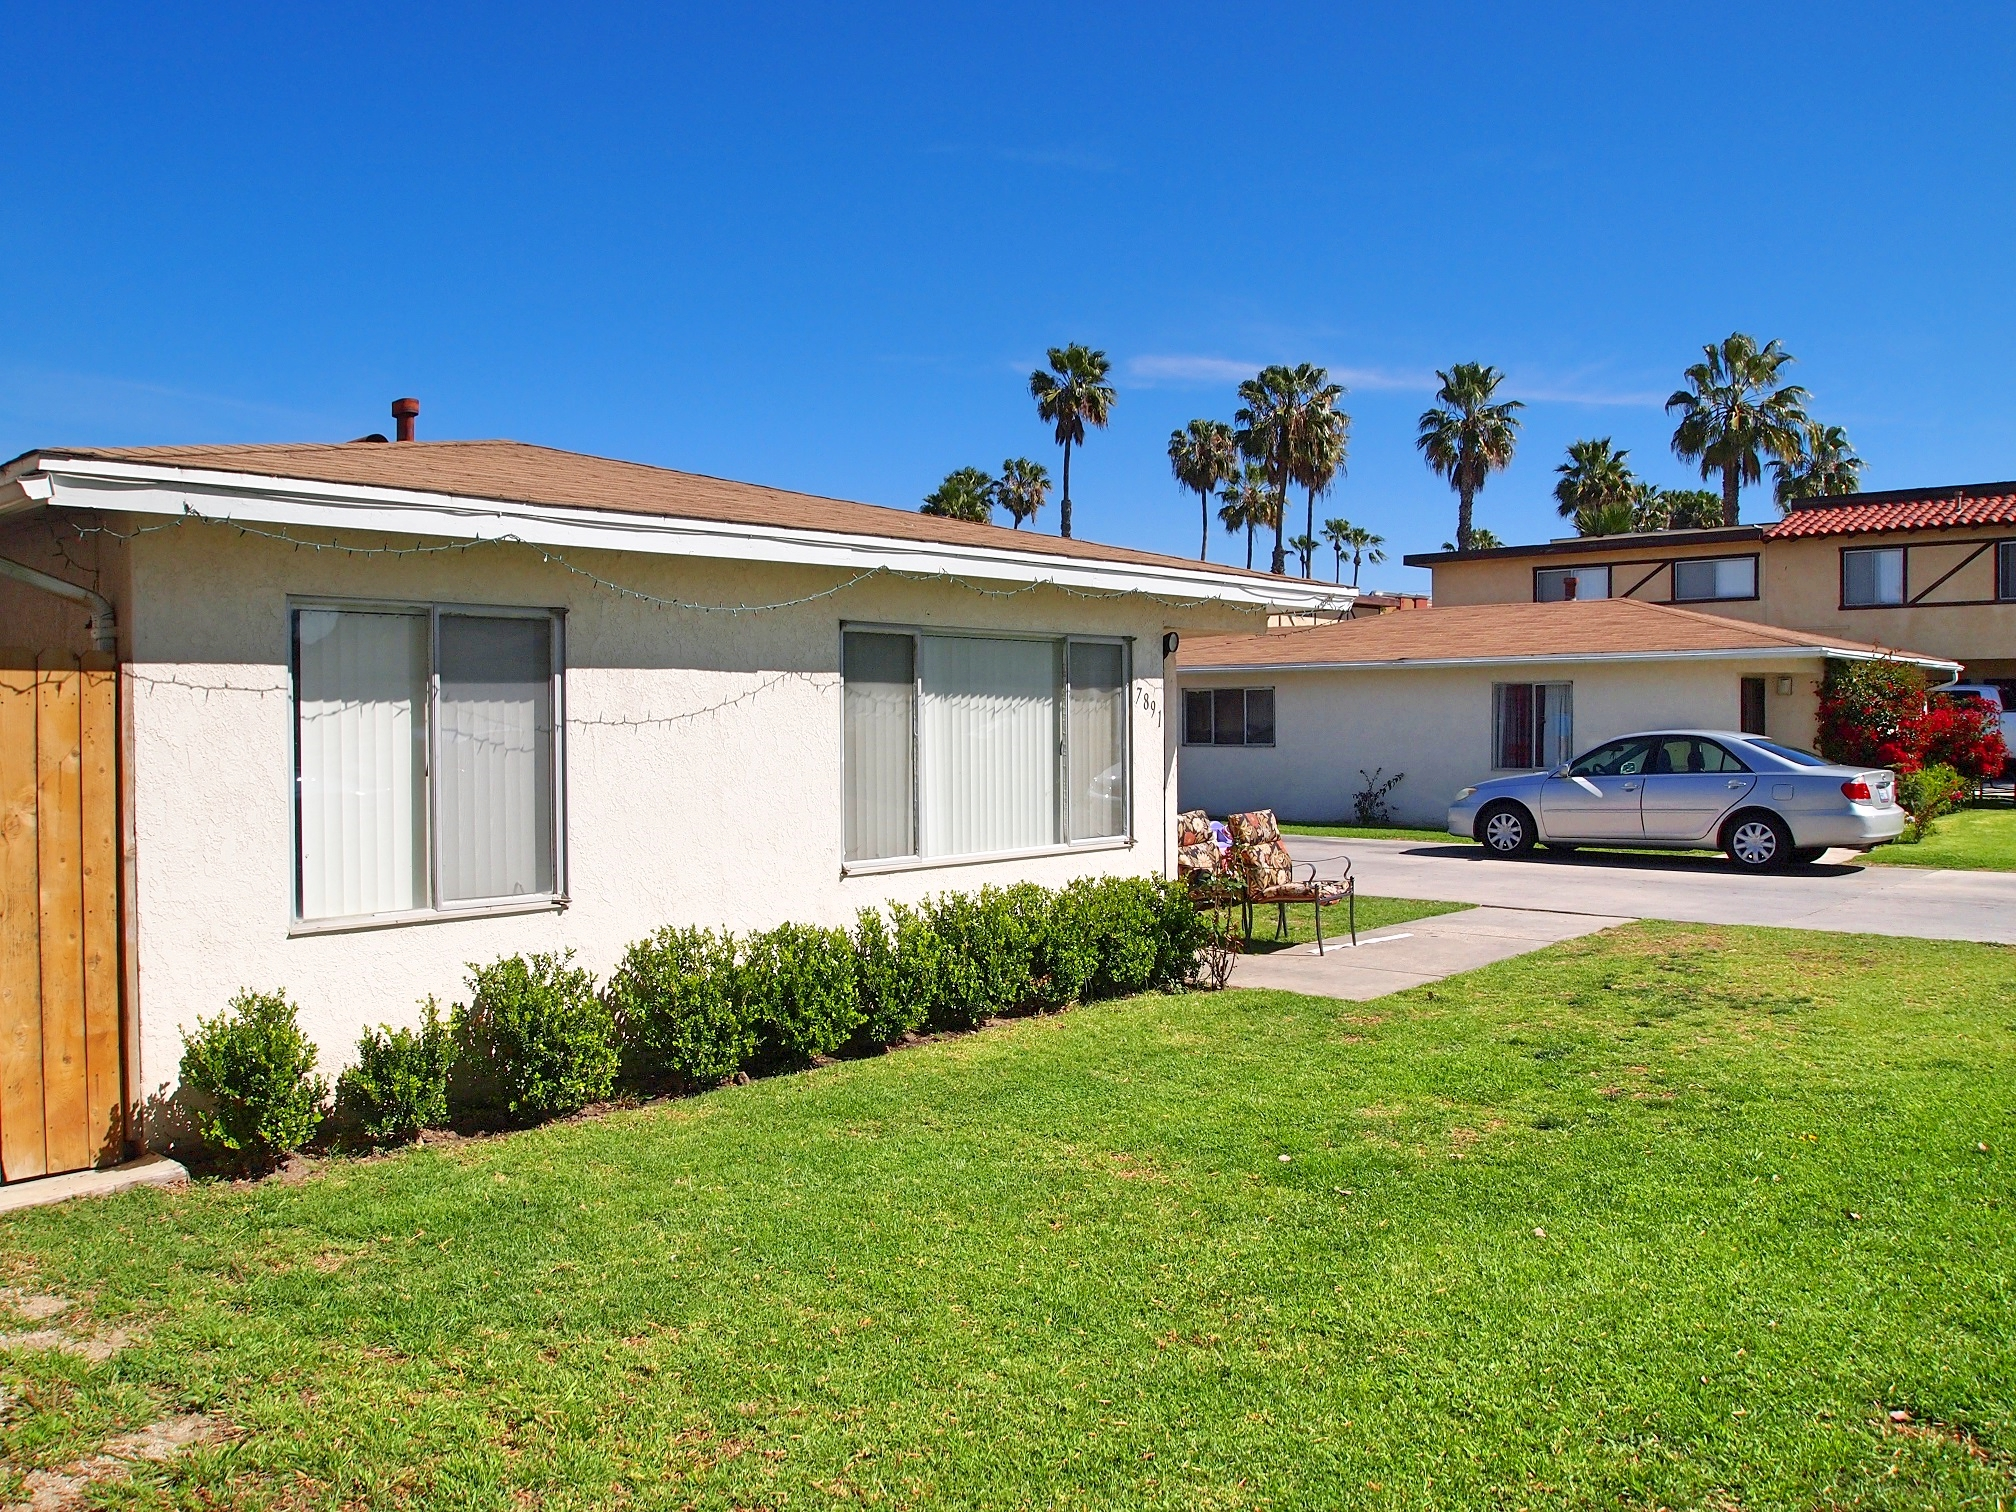 6 Unit Multifamily Investment Real Estate